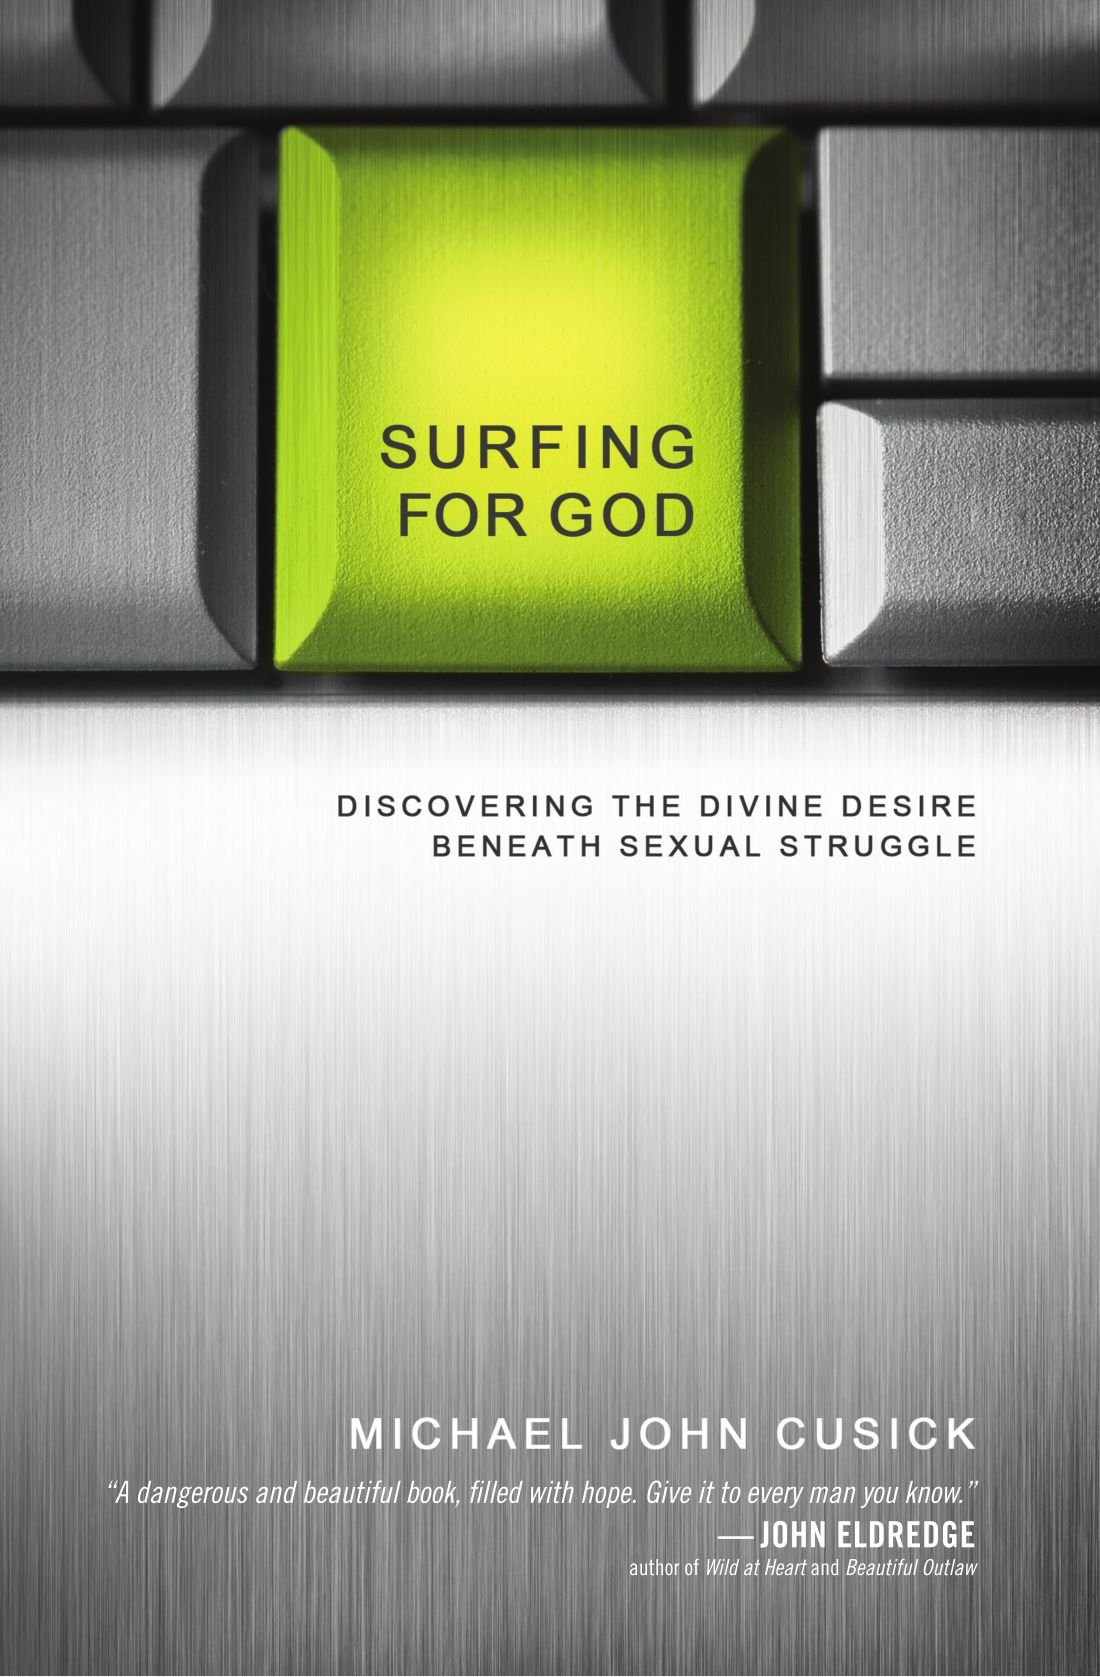 Surfing for God: Discovering the Divine Desire Beneath Sexual Struggle by HarperCollins Christian Pub.